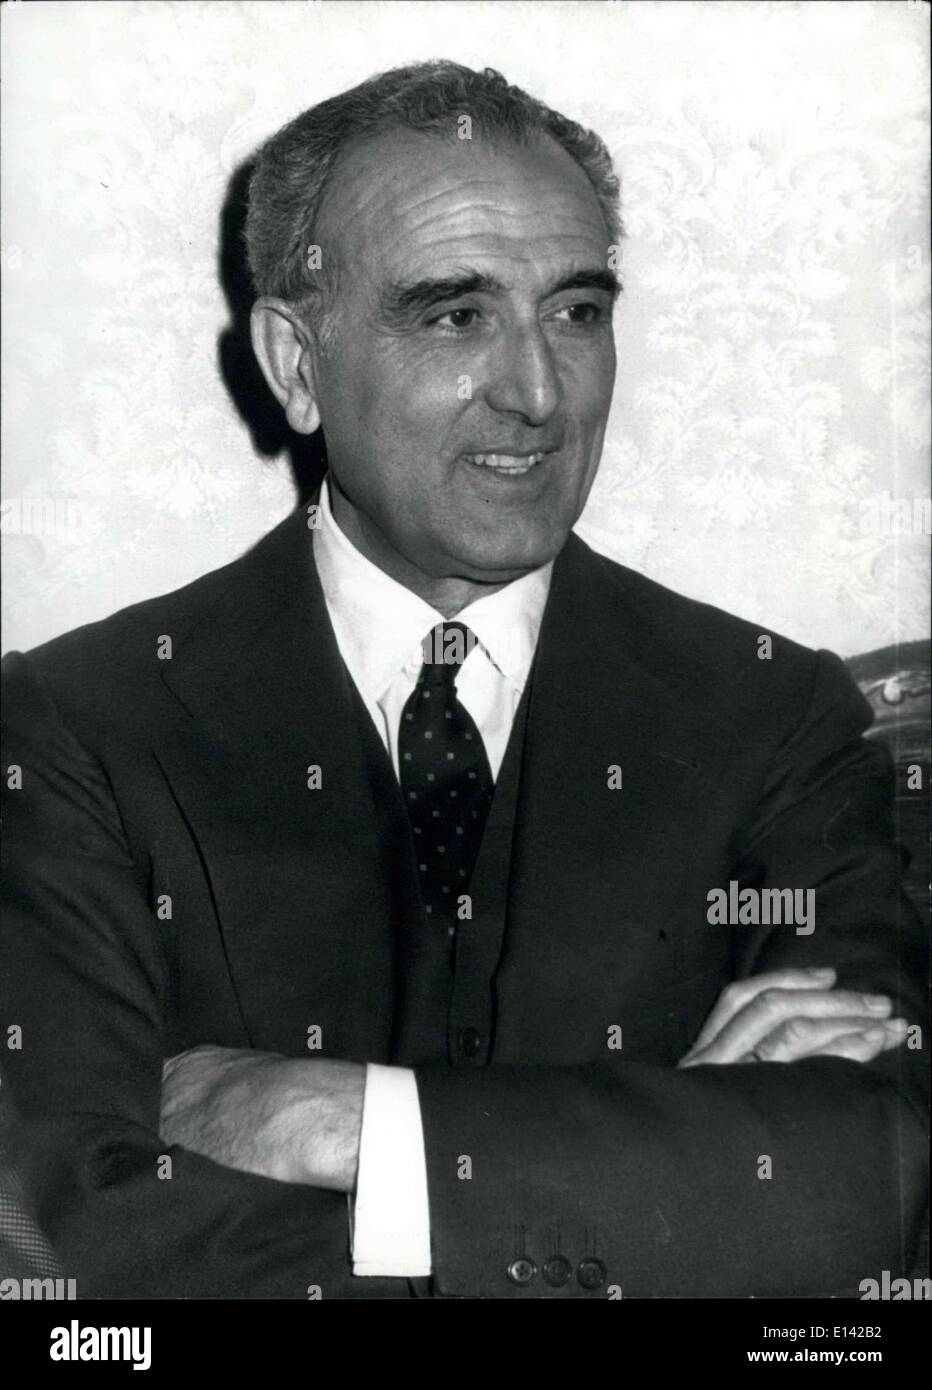 Mar. 31, 2012 - Members of the leftist parties of Spain are in Rome to talk with Italian colleagues. Photo shows Joaquin Ruiz Gimenez, leader of the Democratic left. - Stock Image